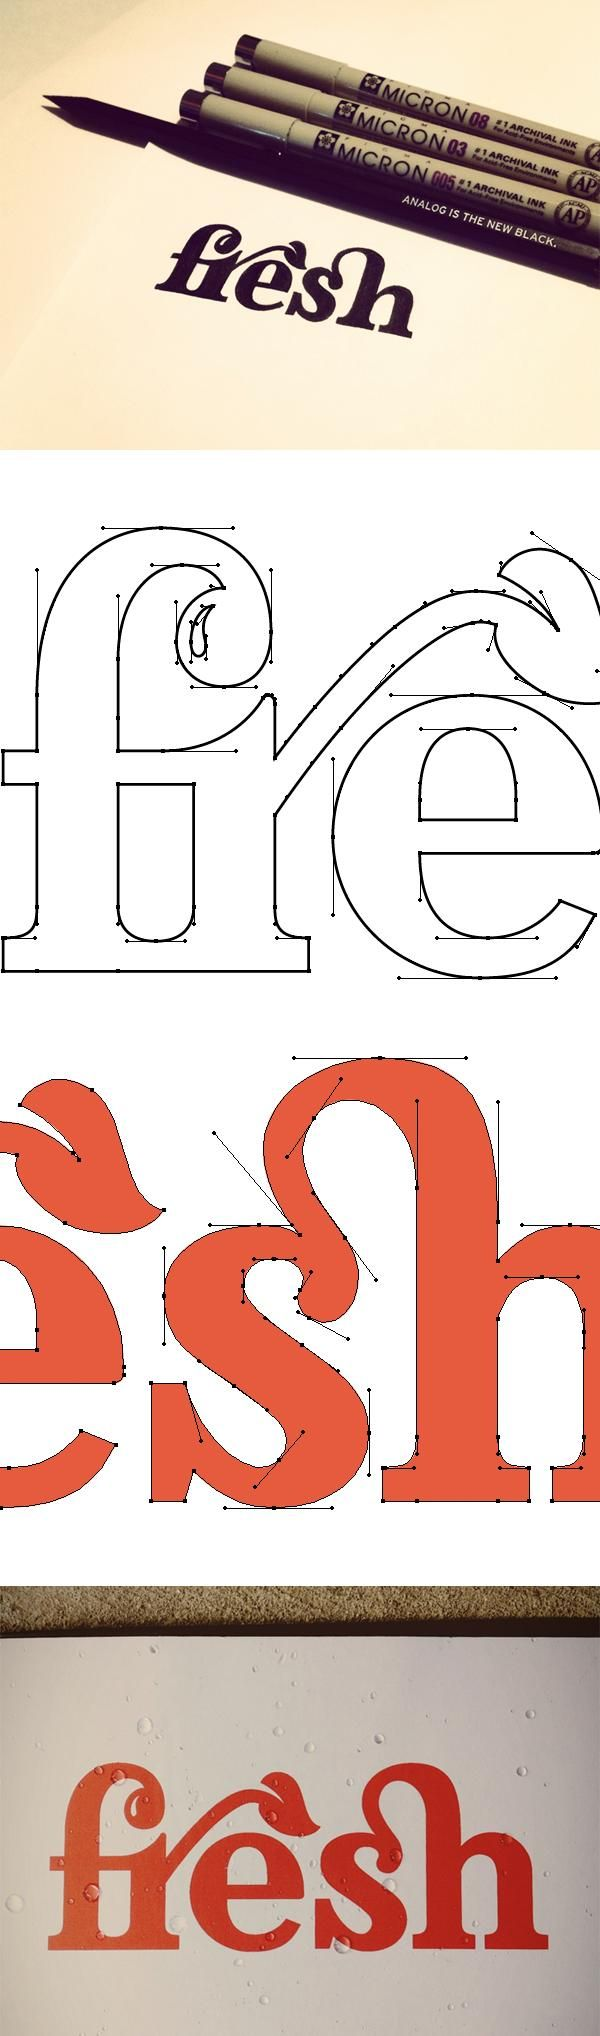 //typographic identity design featuring ligatures